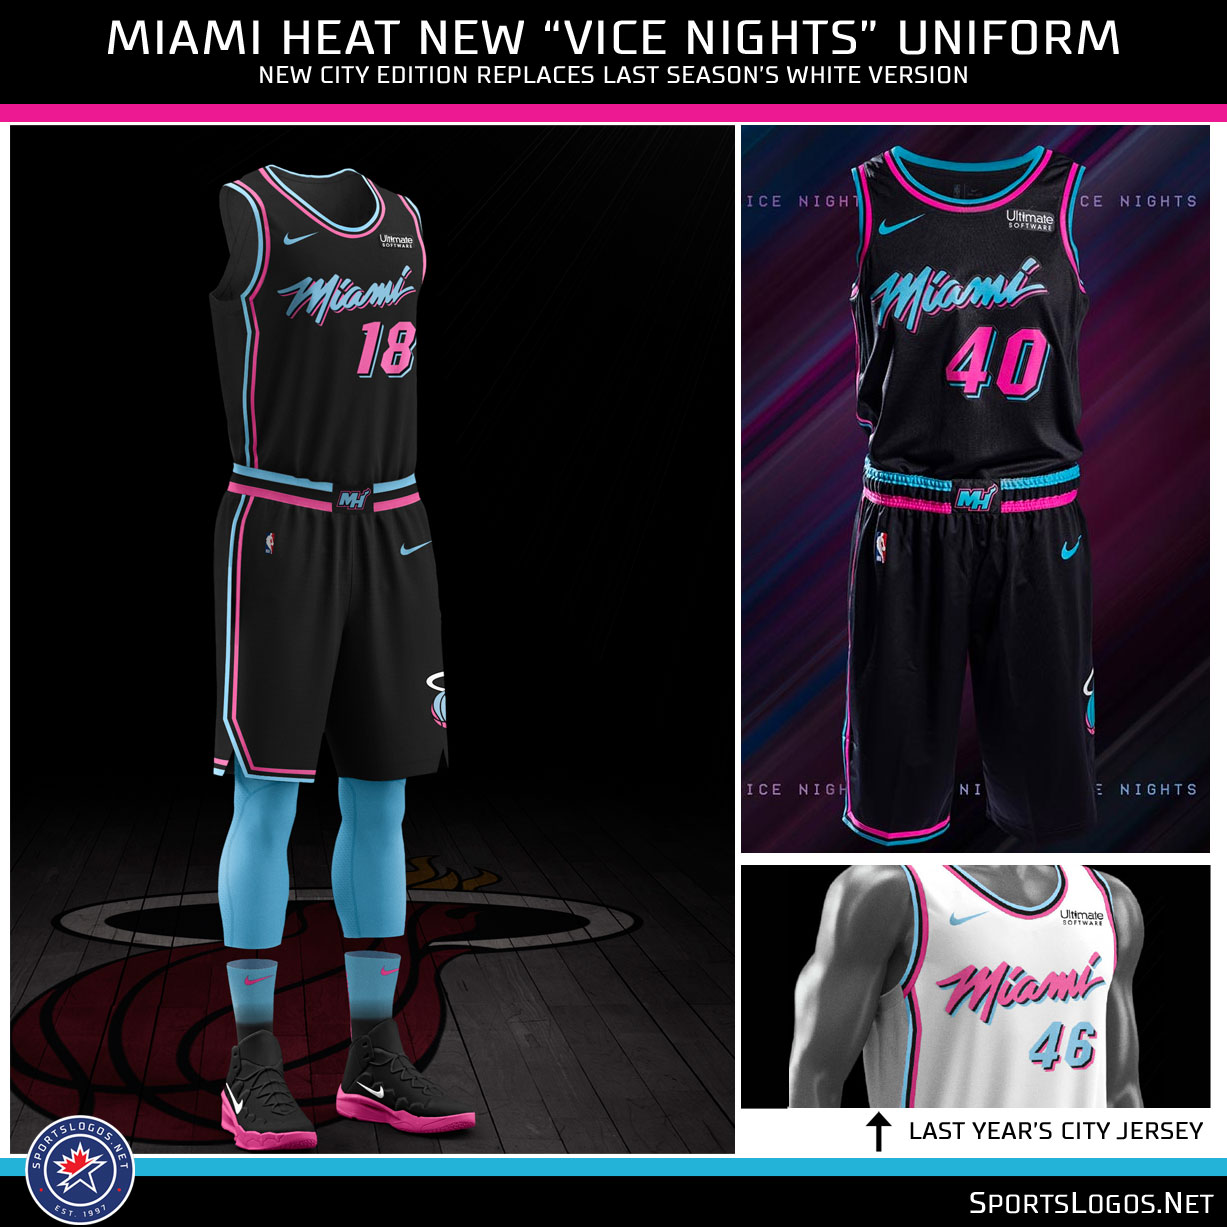 promo code d4c43 965d2 Vice Nights 2.0: Miami Heat Unveil New City Uniform | Chris ...